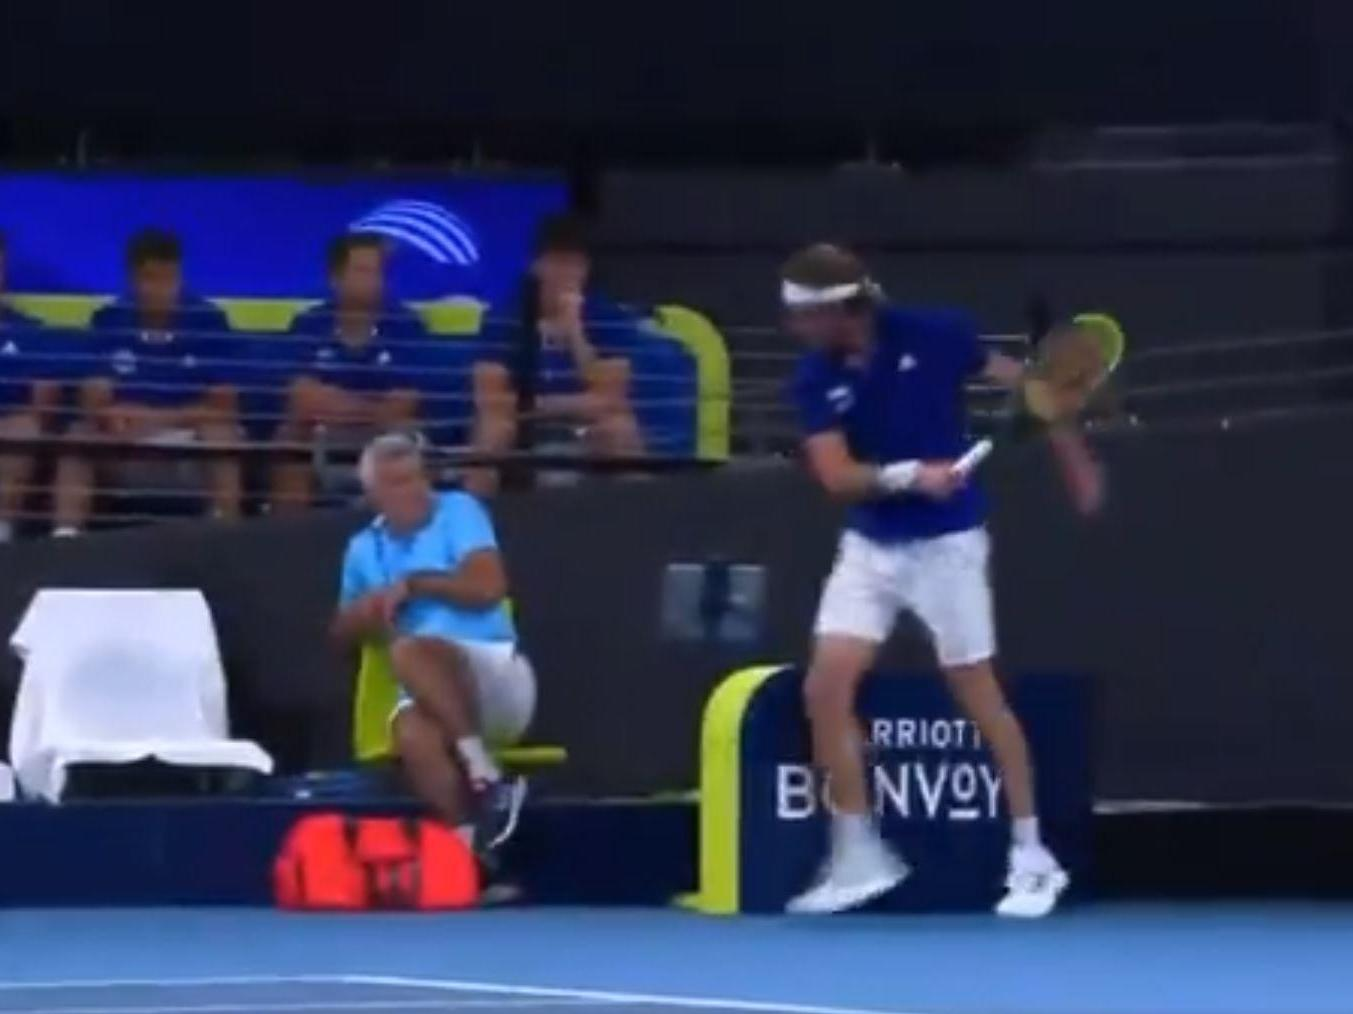 Stefanos Tsitsipas Video Tennis Player Hits Father With Racket After Mid Match Meltdown The Independent The Independent